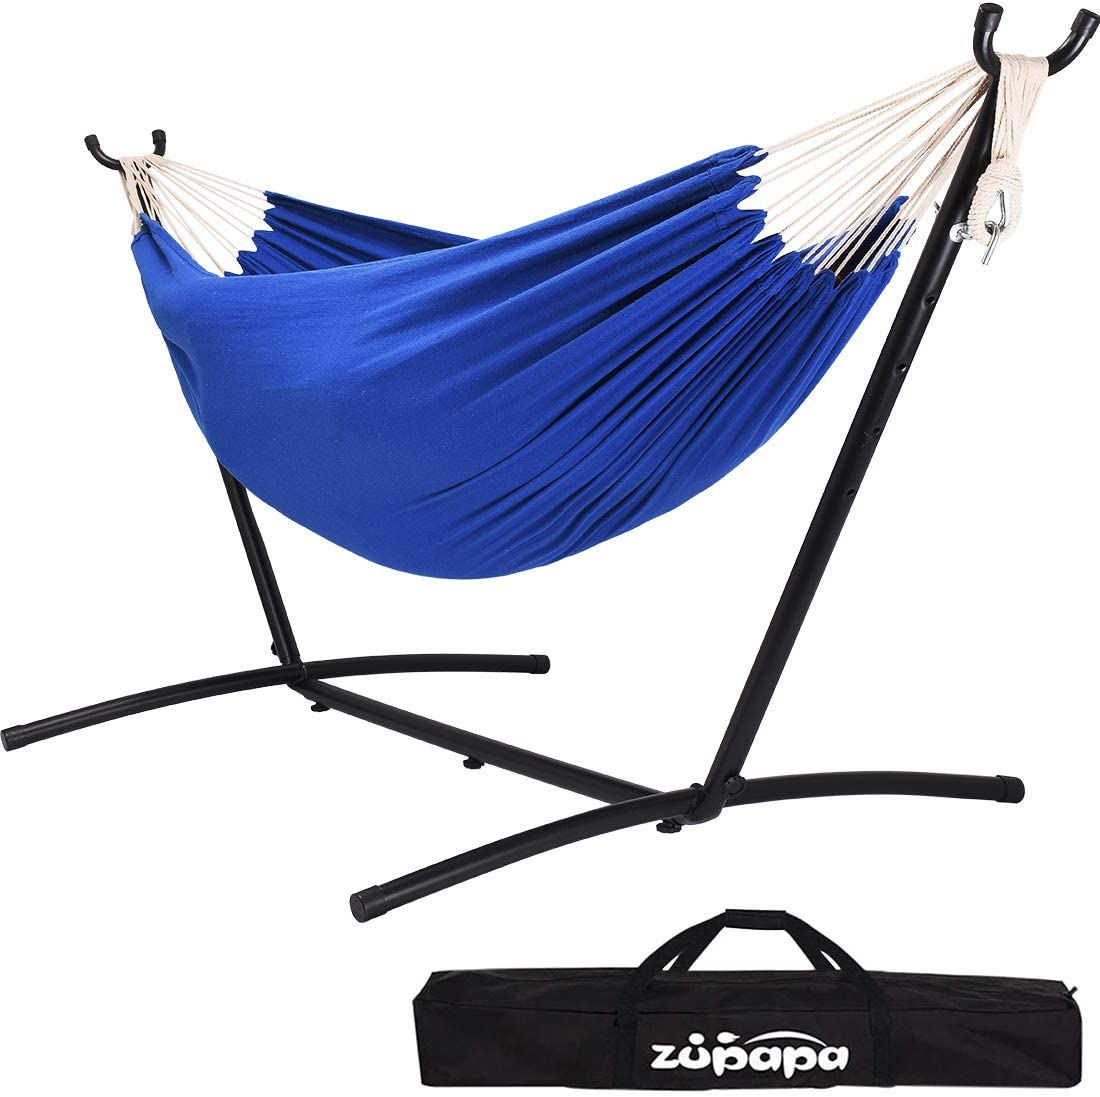 Zupapa Double Hammock with Stand and Carrying Case, 10Feet Hammock Frame, 2 People Hammock Combo for Backyard Garden Patio Indoor Outdoor  (Blue)